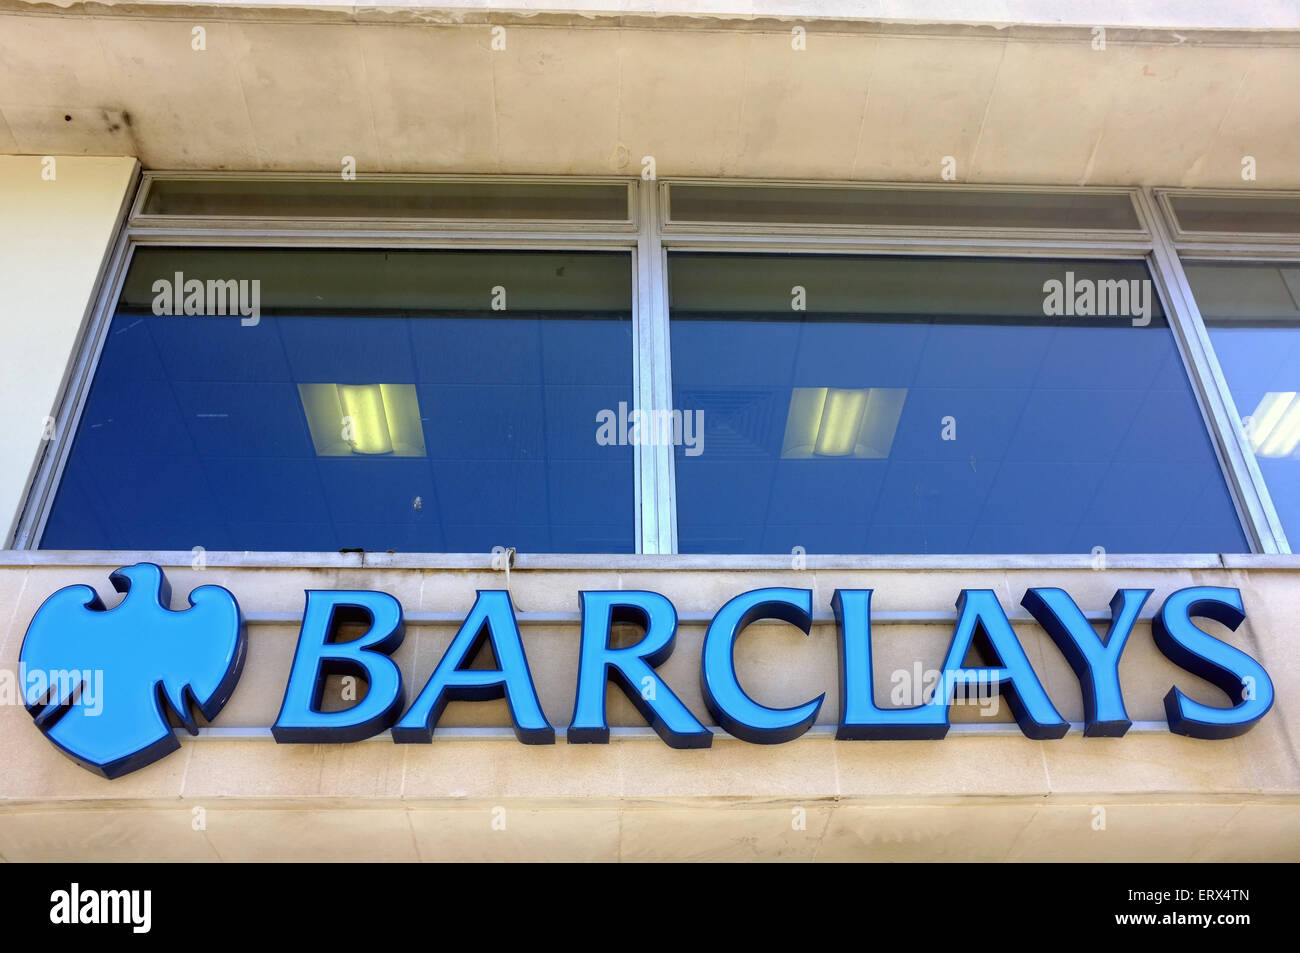 The sign for Barclays bank in the Clifton area of Bristol. - Stock Image